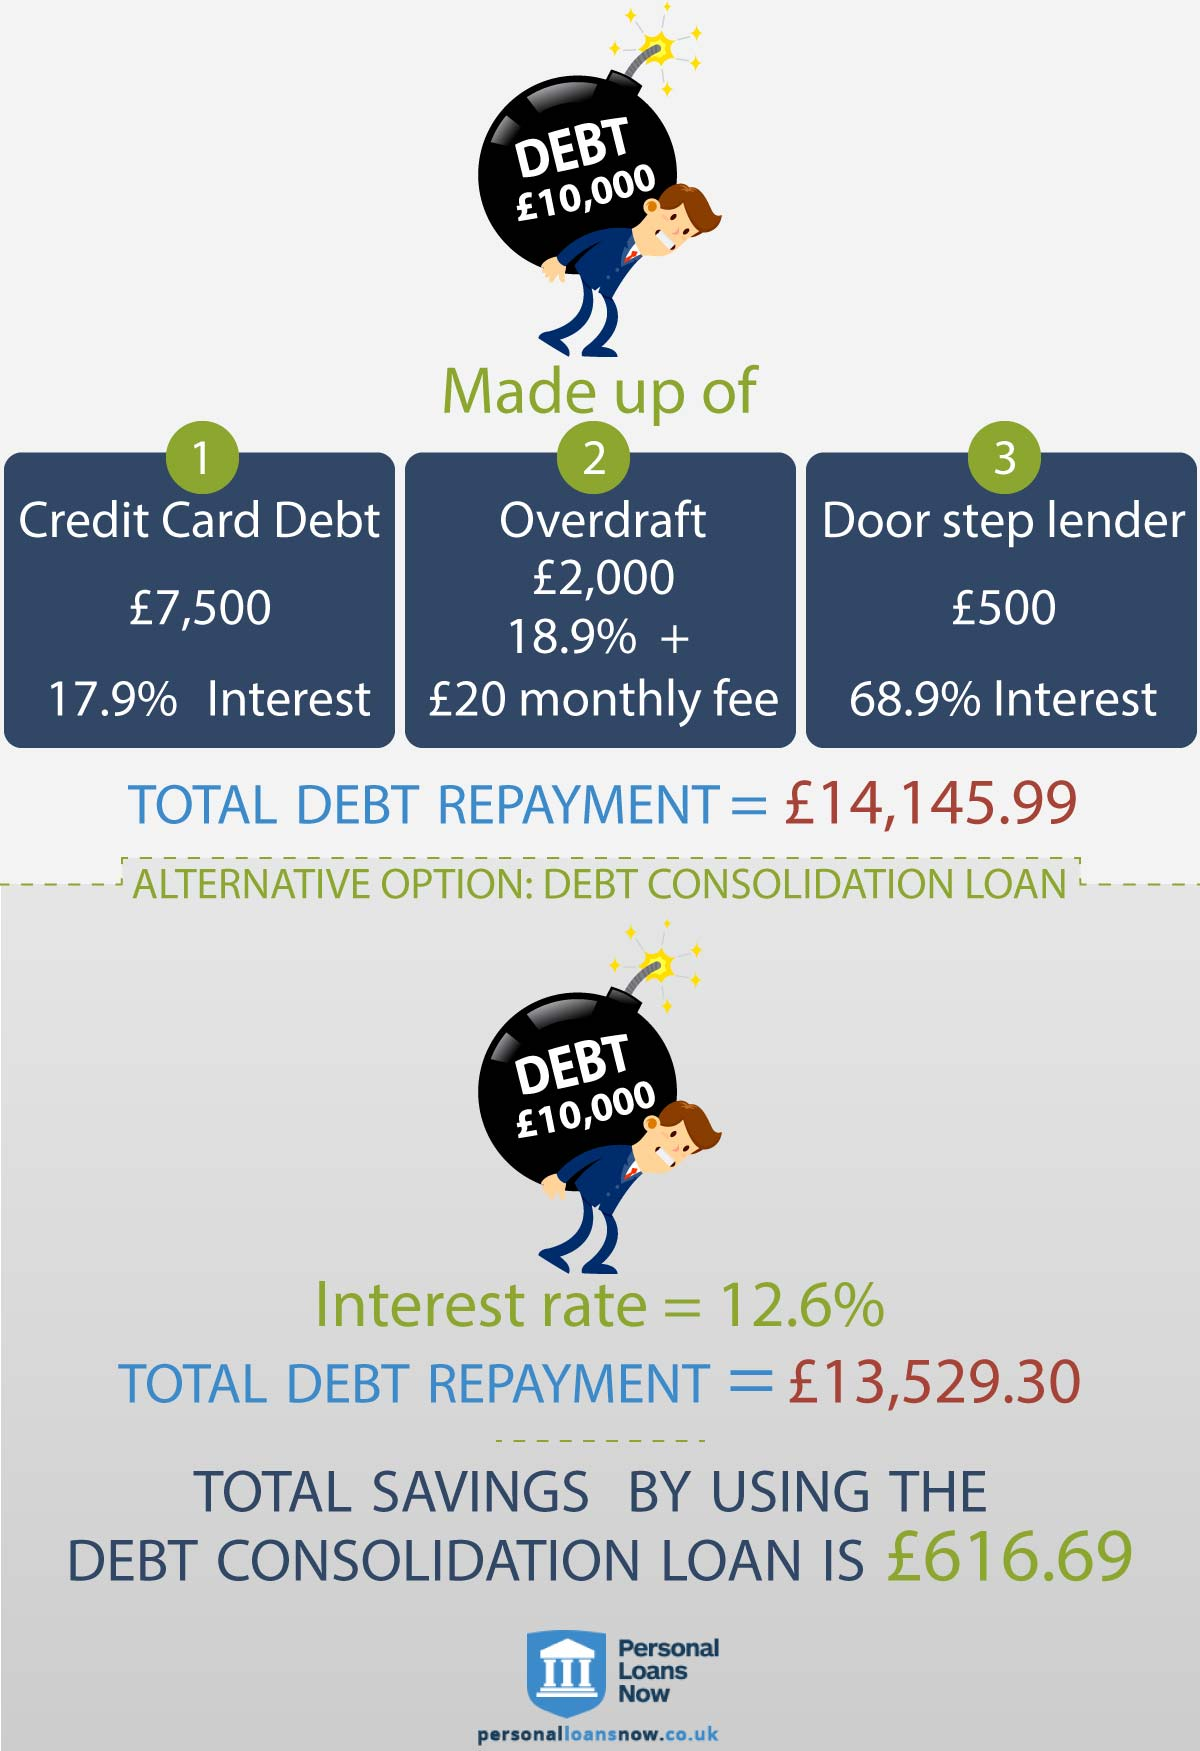 debt consolidation loans - personal loans now